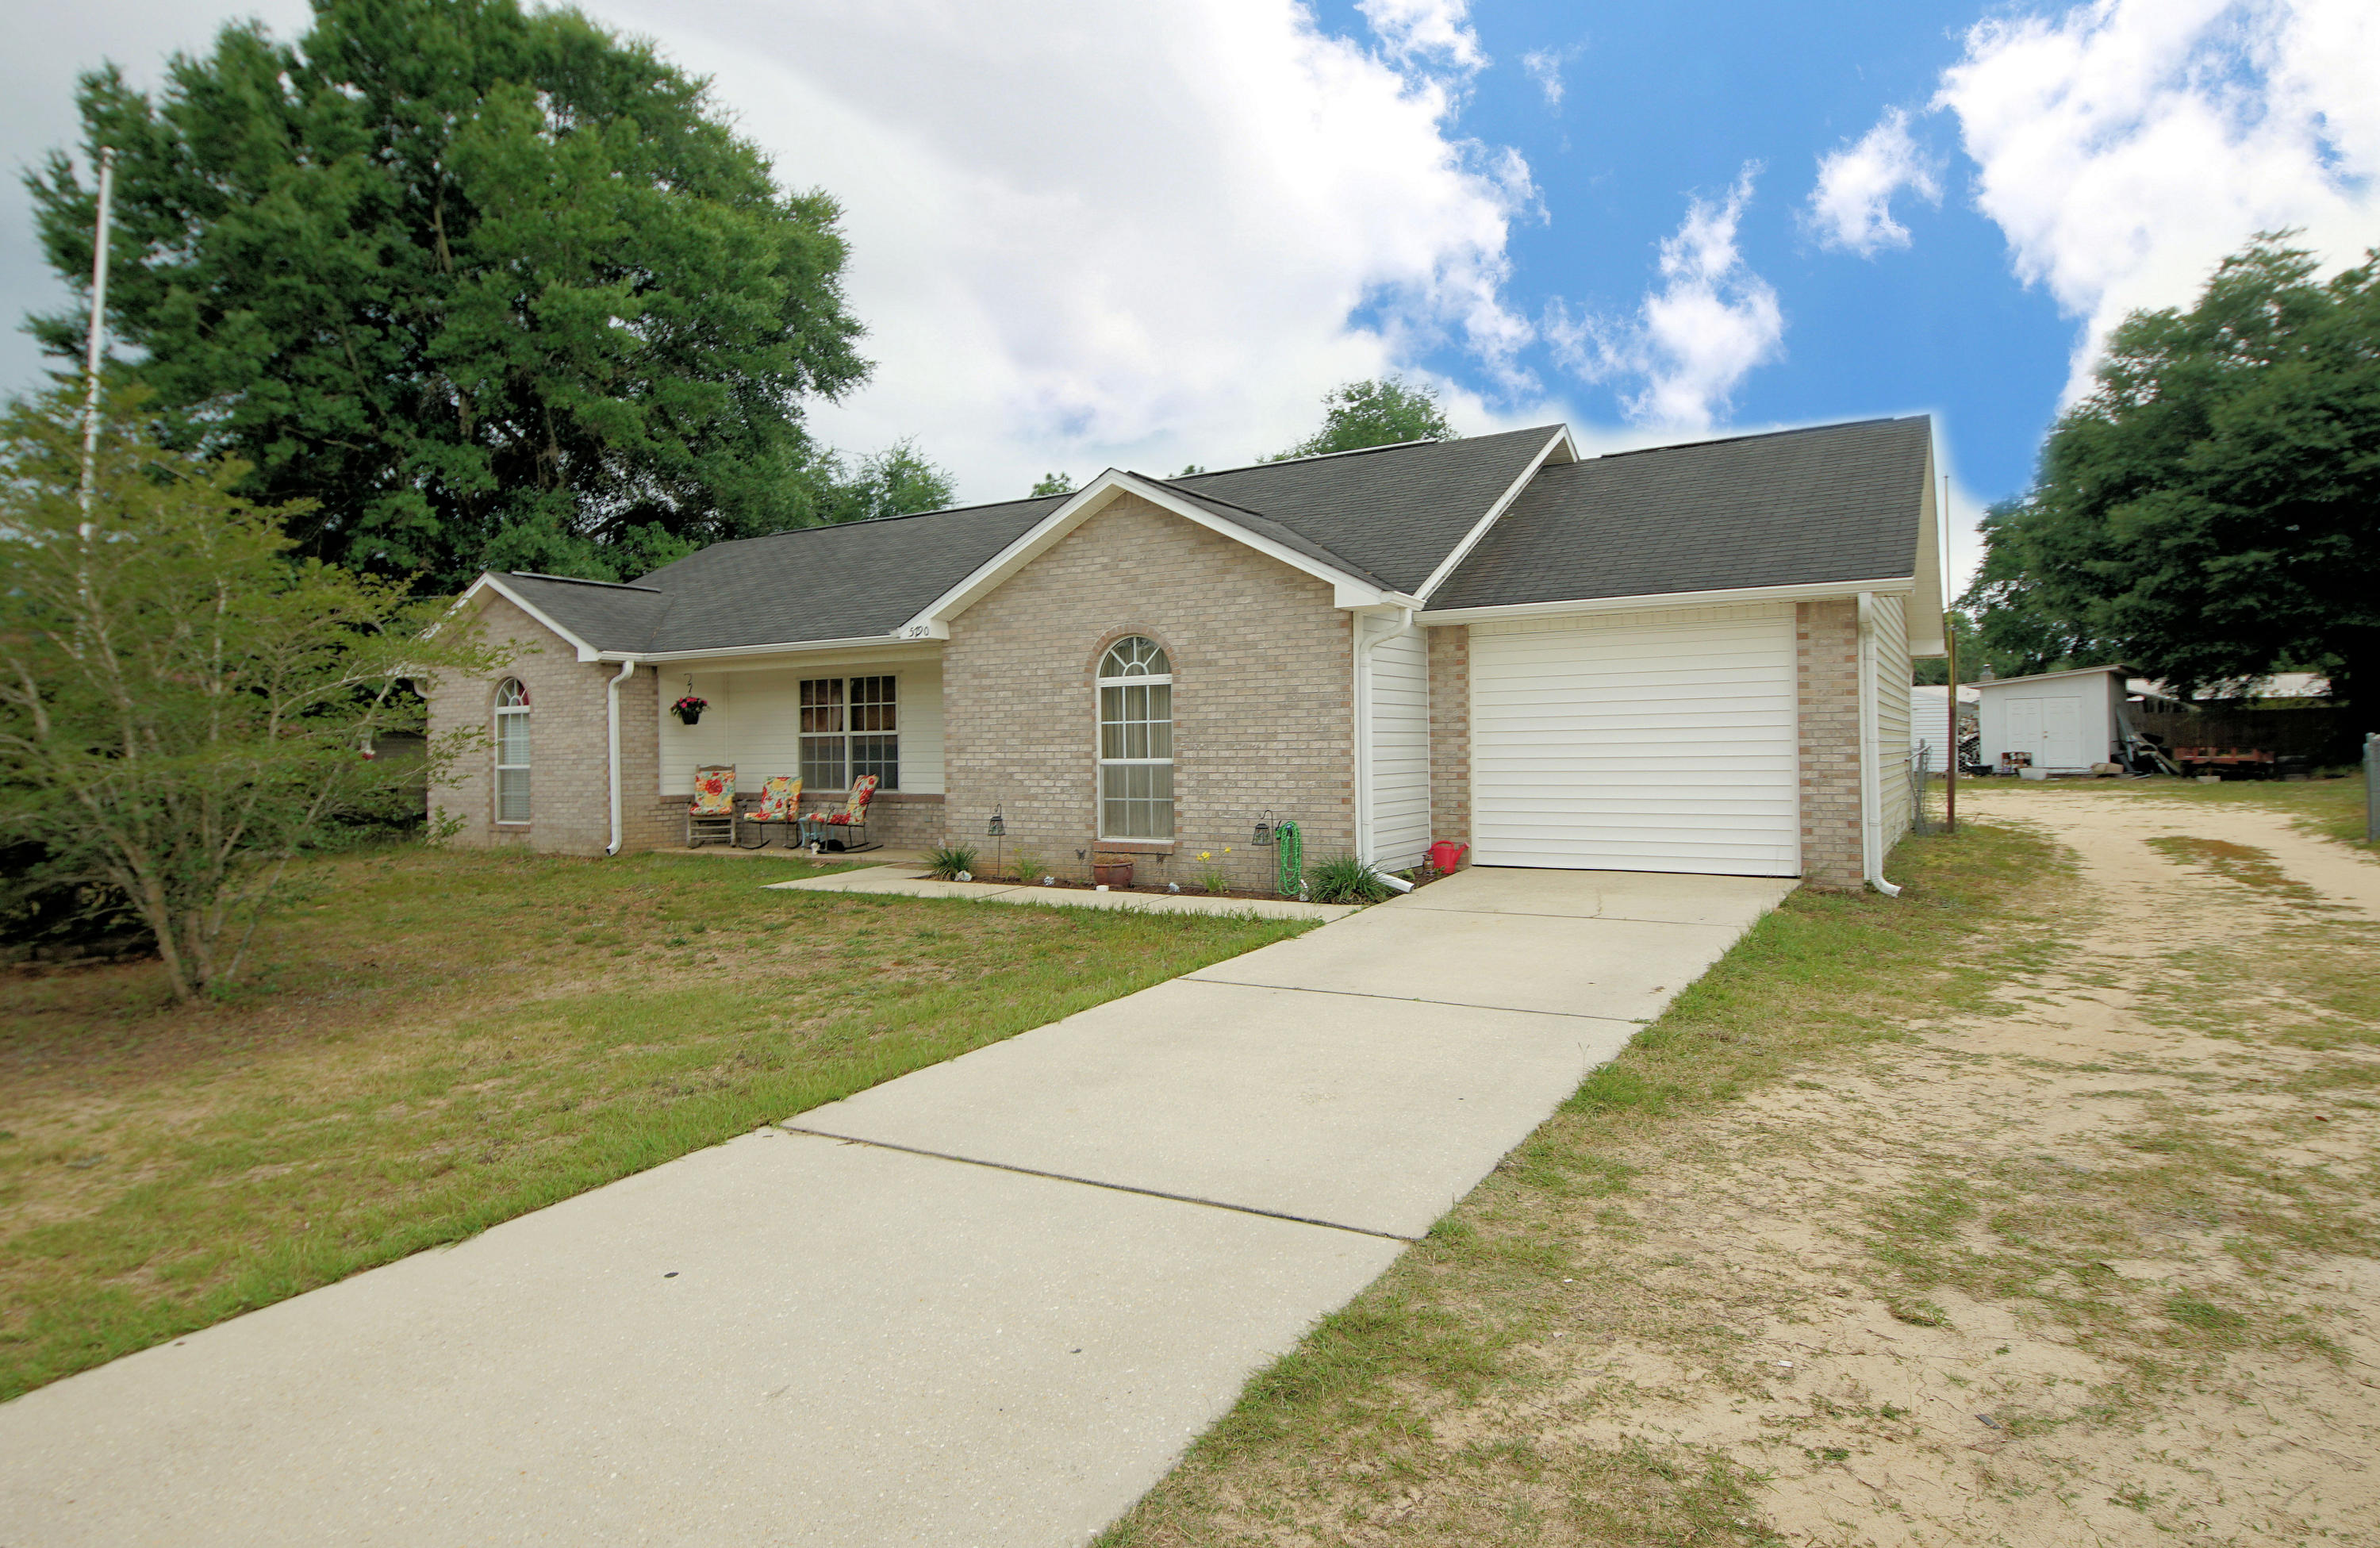 The quiet life! This charming home is situated in north Crestview sits on just under an acre of land